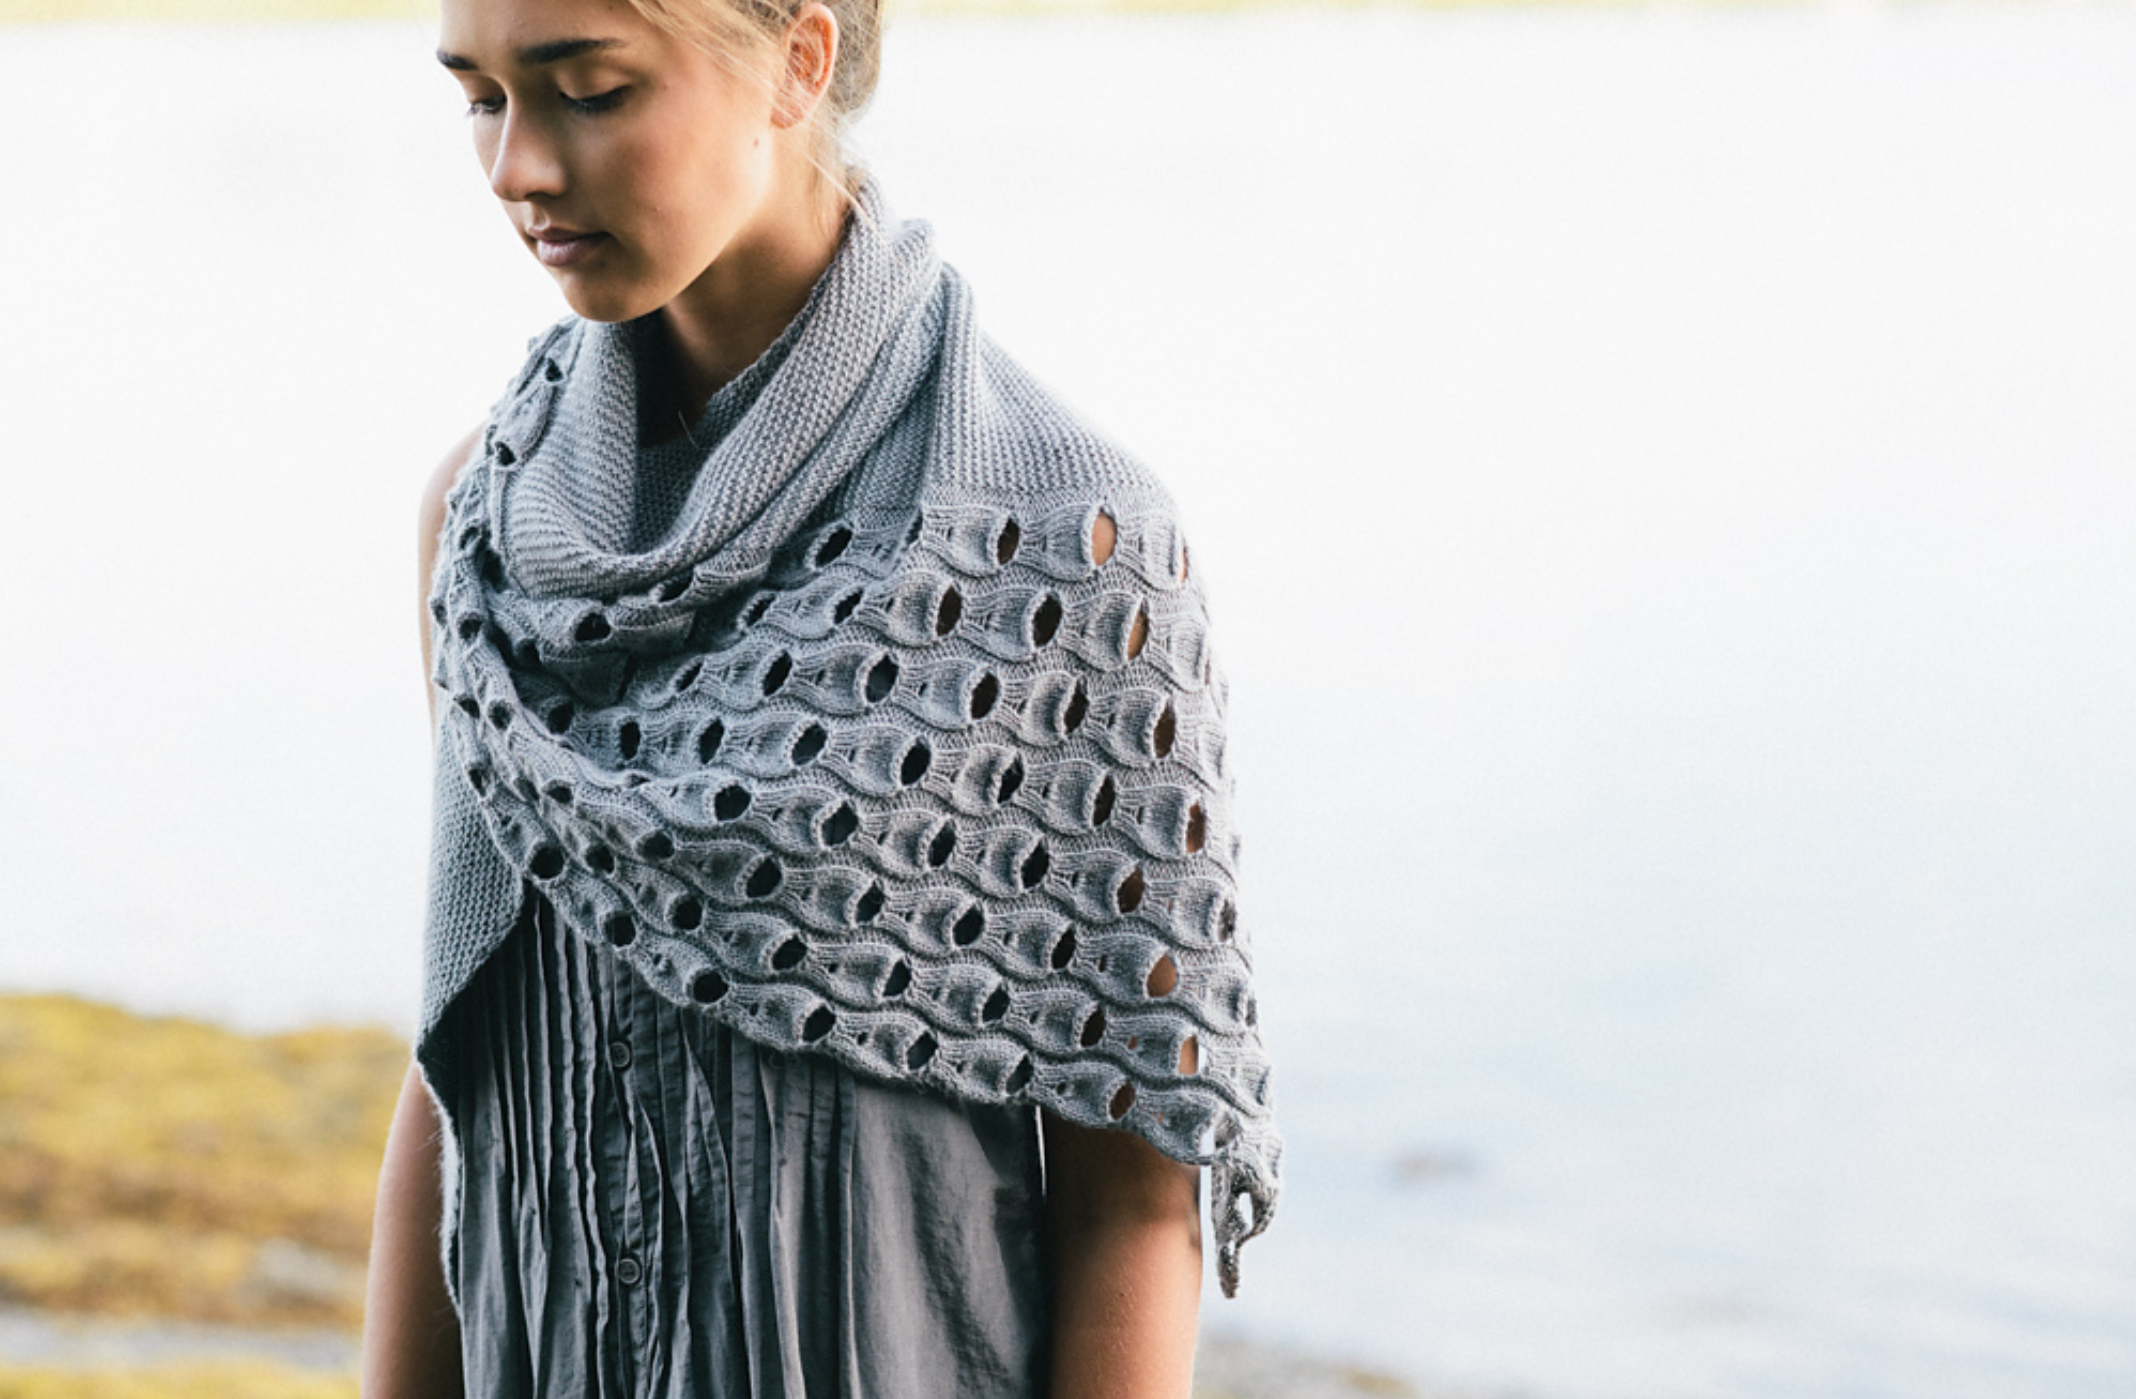 Open Waters Shawl by Melanie Berg featuring The Fibre Co. Canopy Fingering. Image © Carrie Bostick Hoge